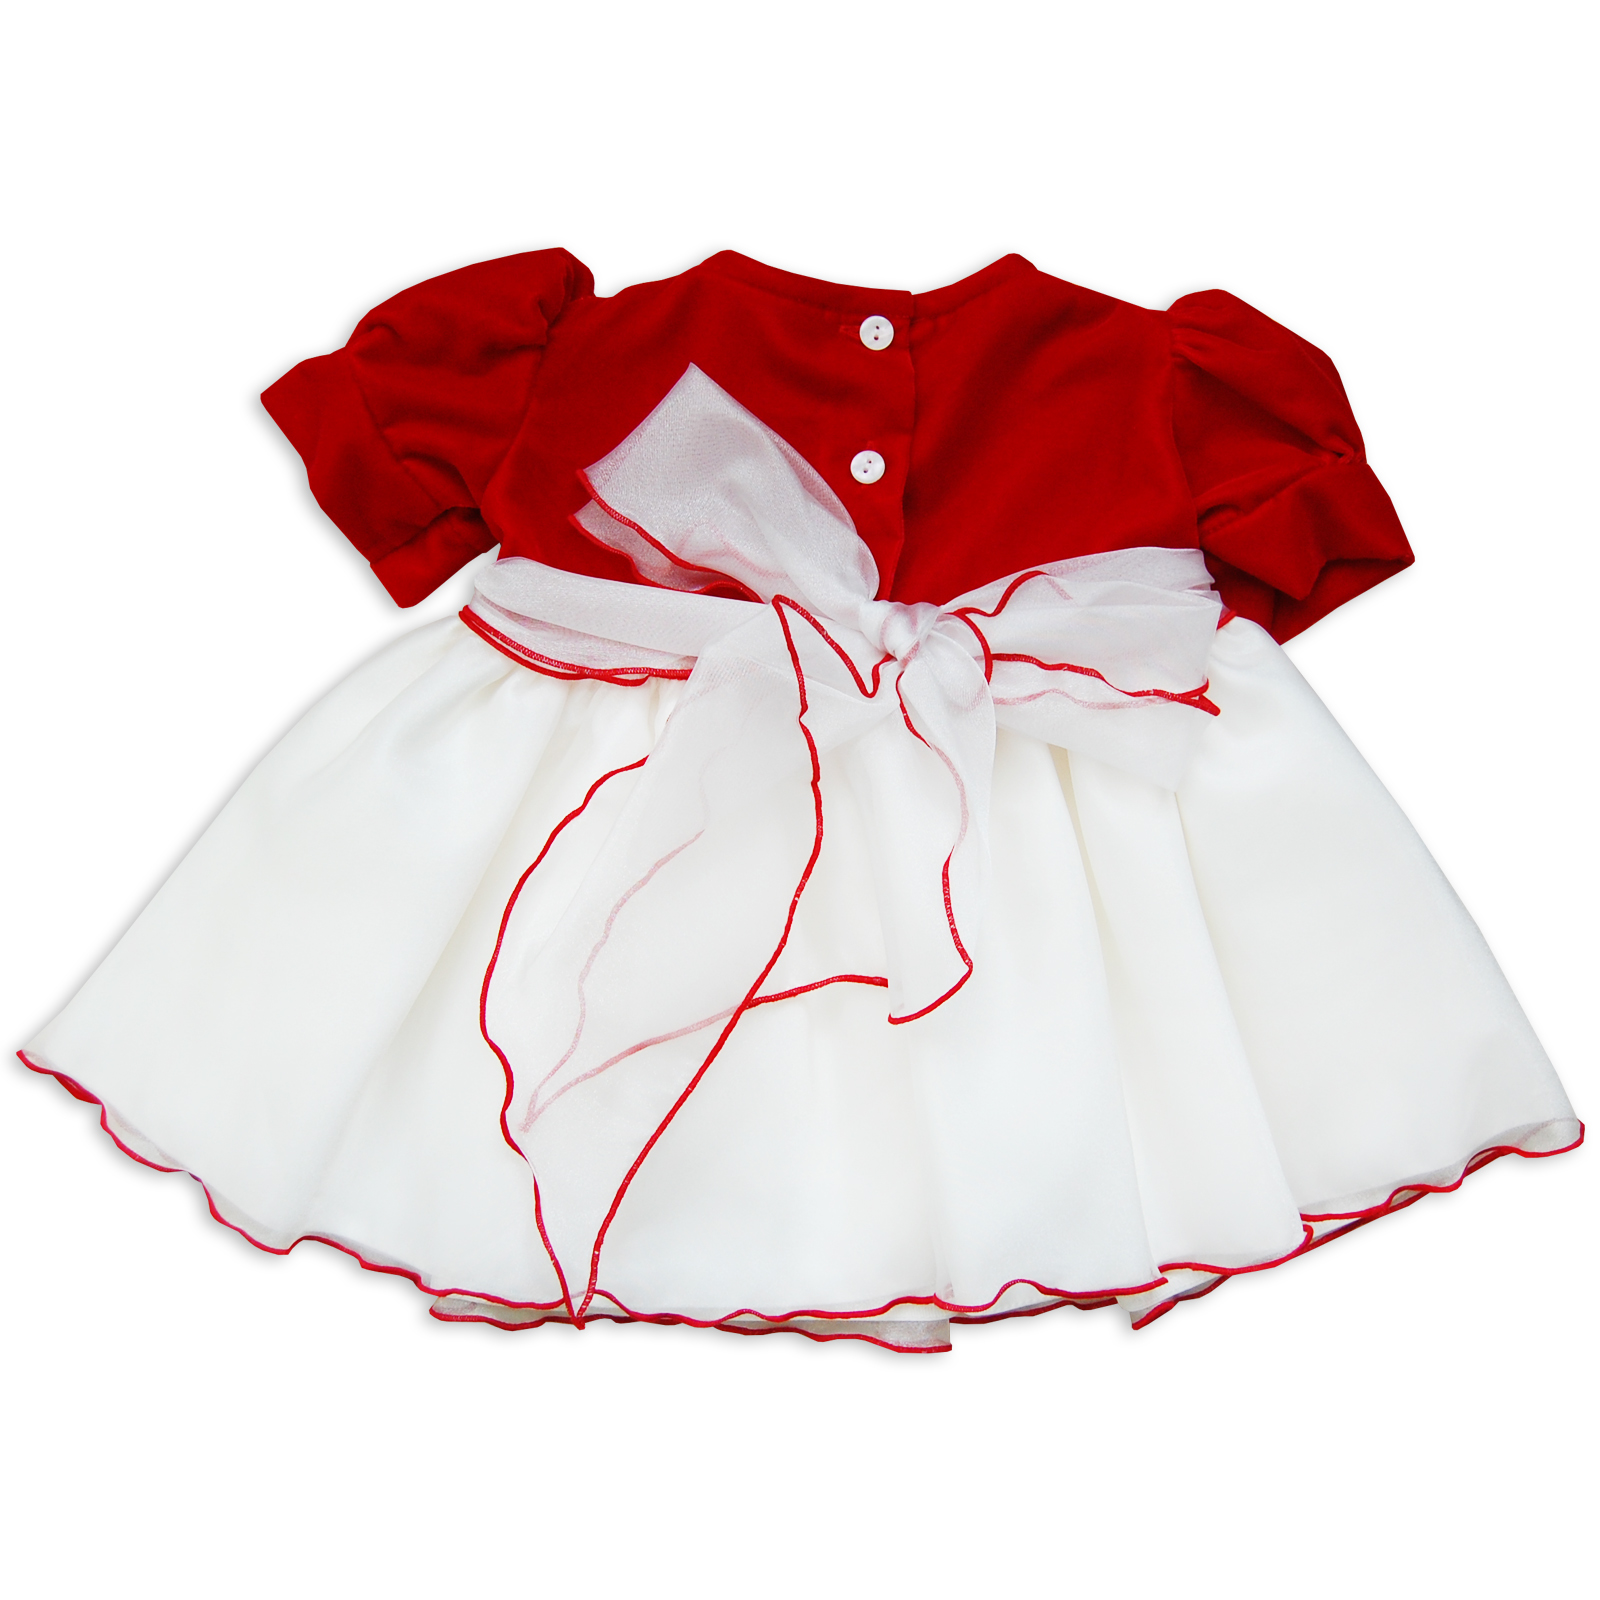 Clothes shoes amp accessories gt girls clothing 0 24 months gt dresses